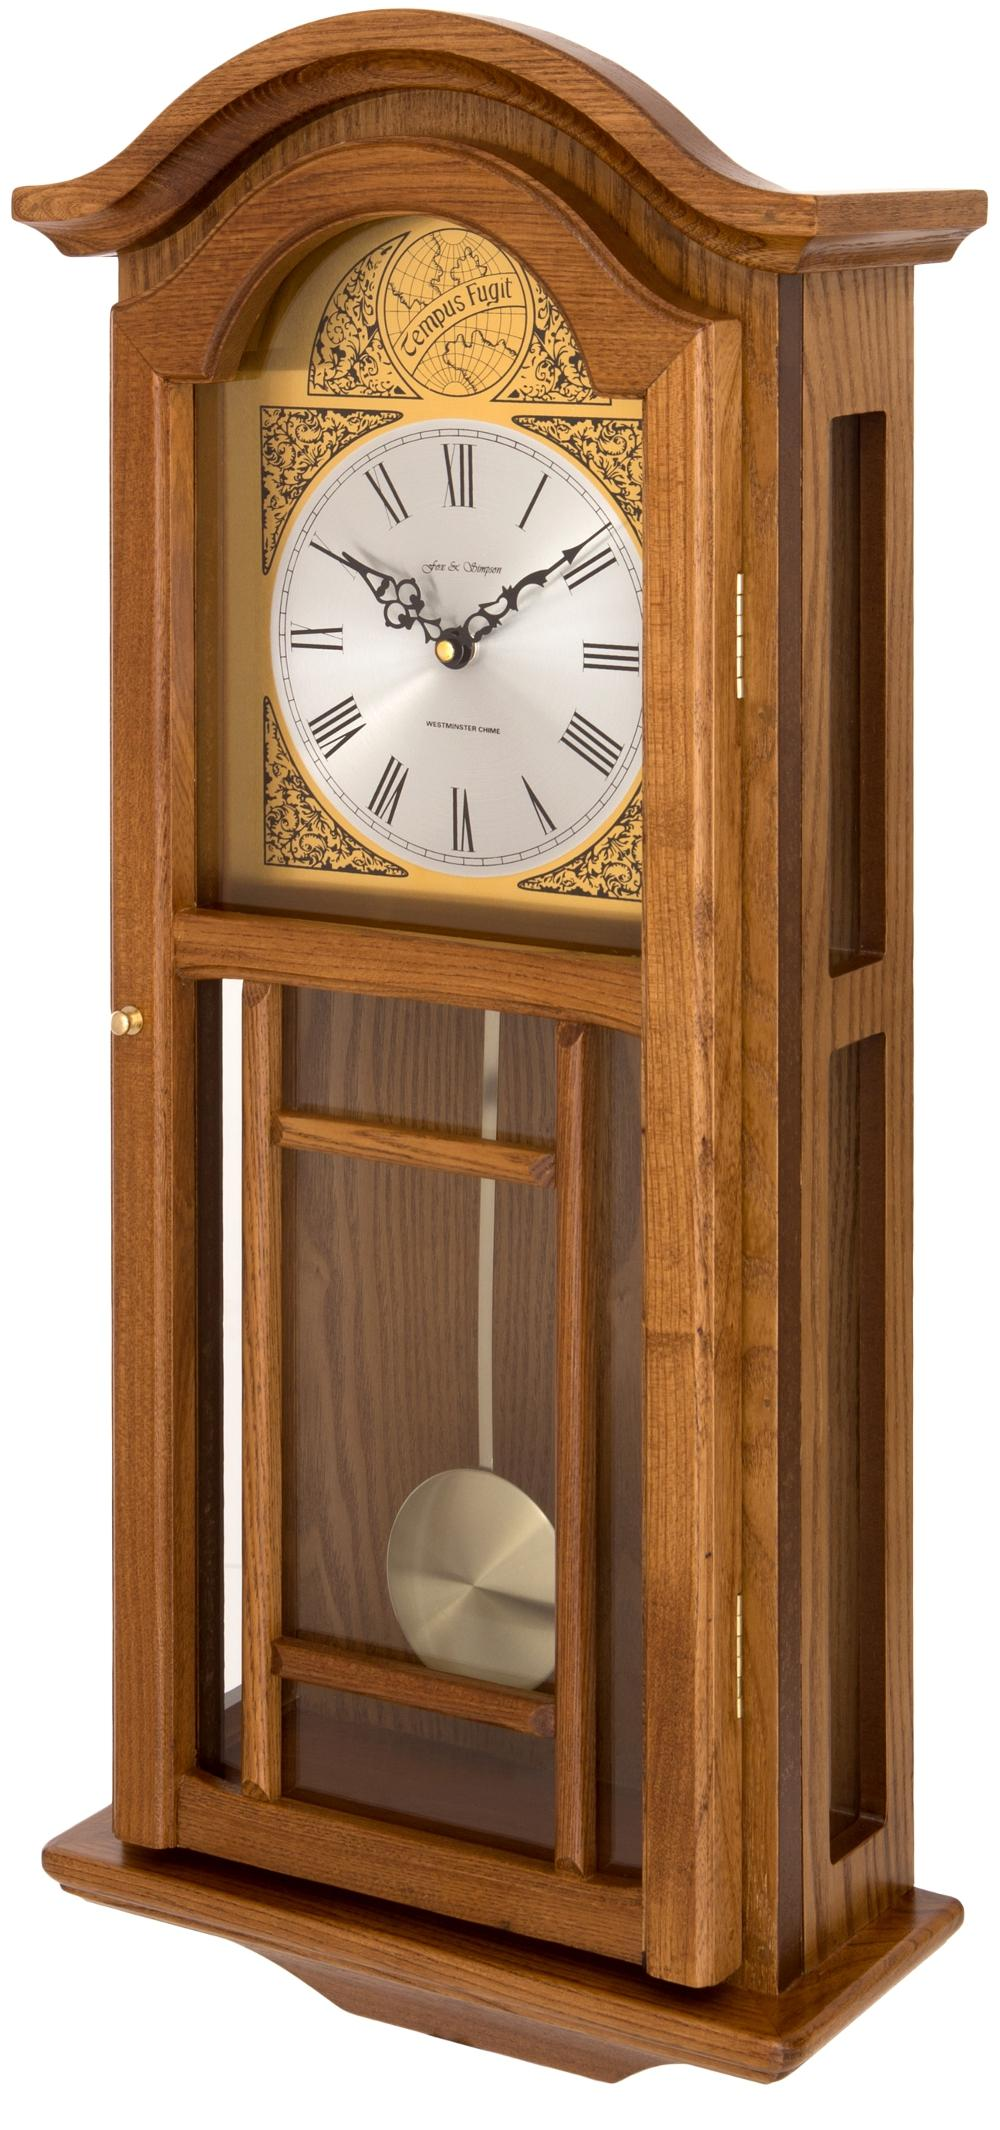 Kempston Westminster Chimes Pendulum Clock